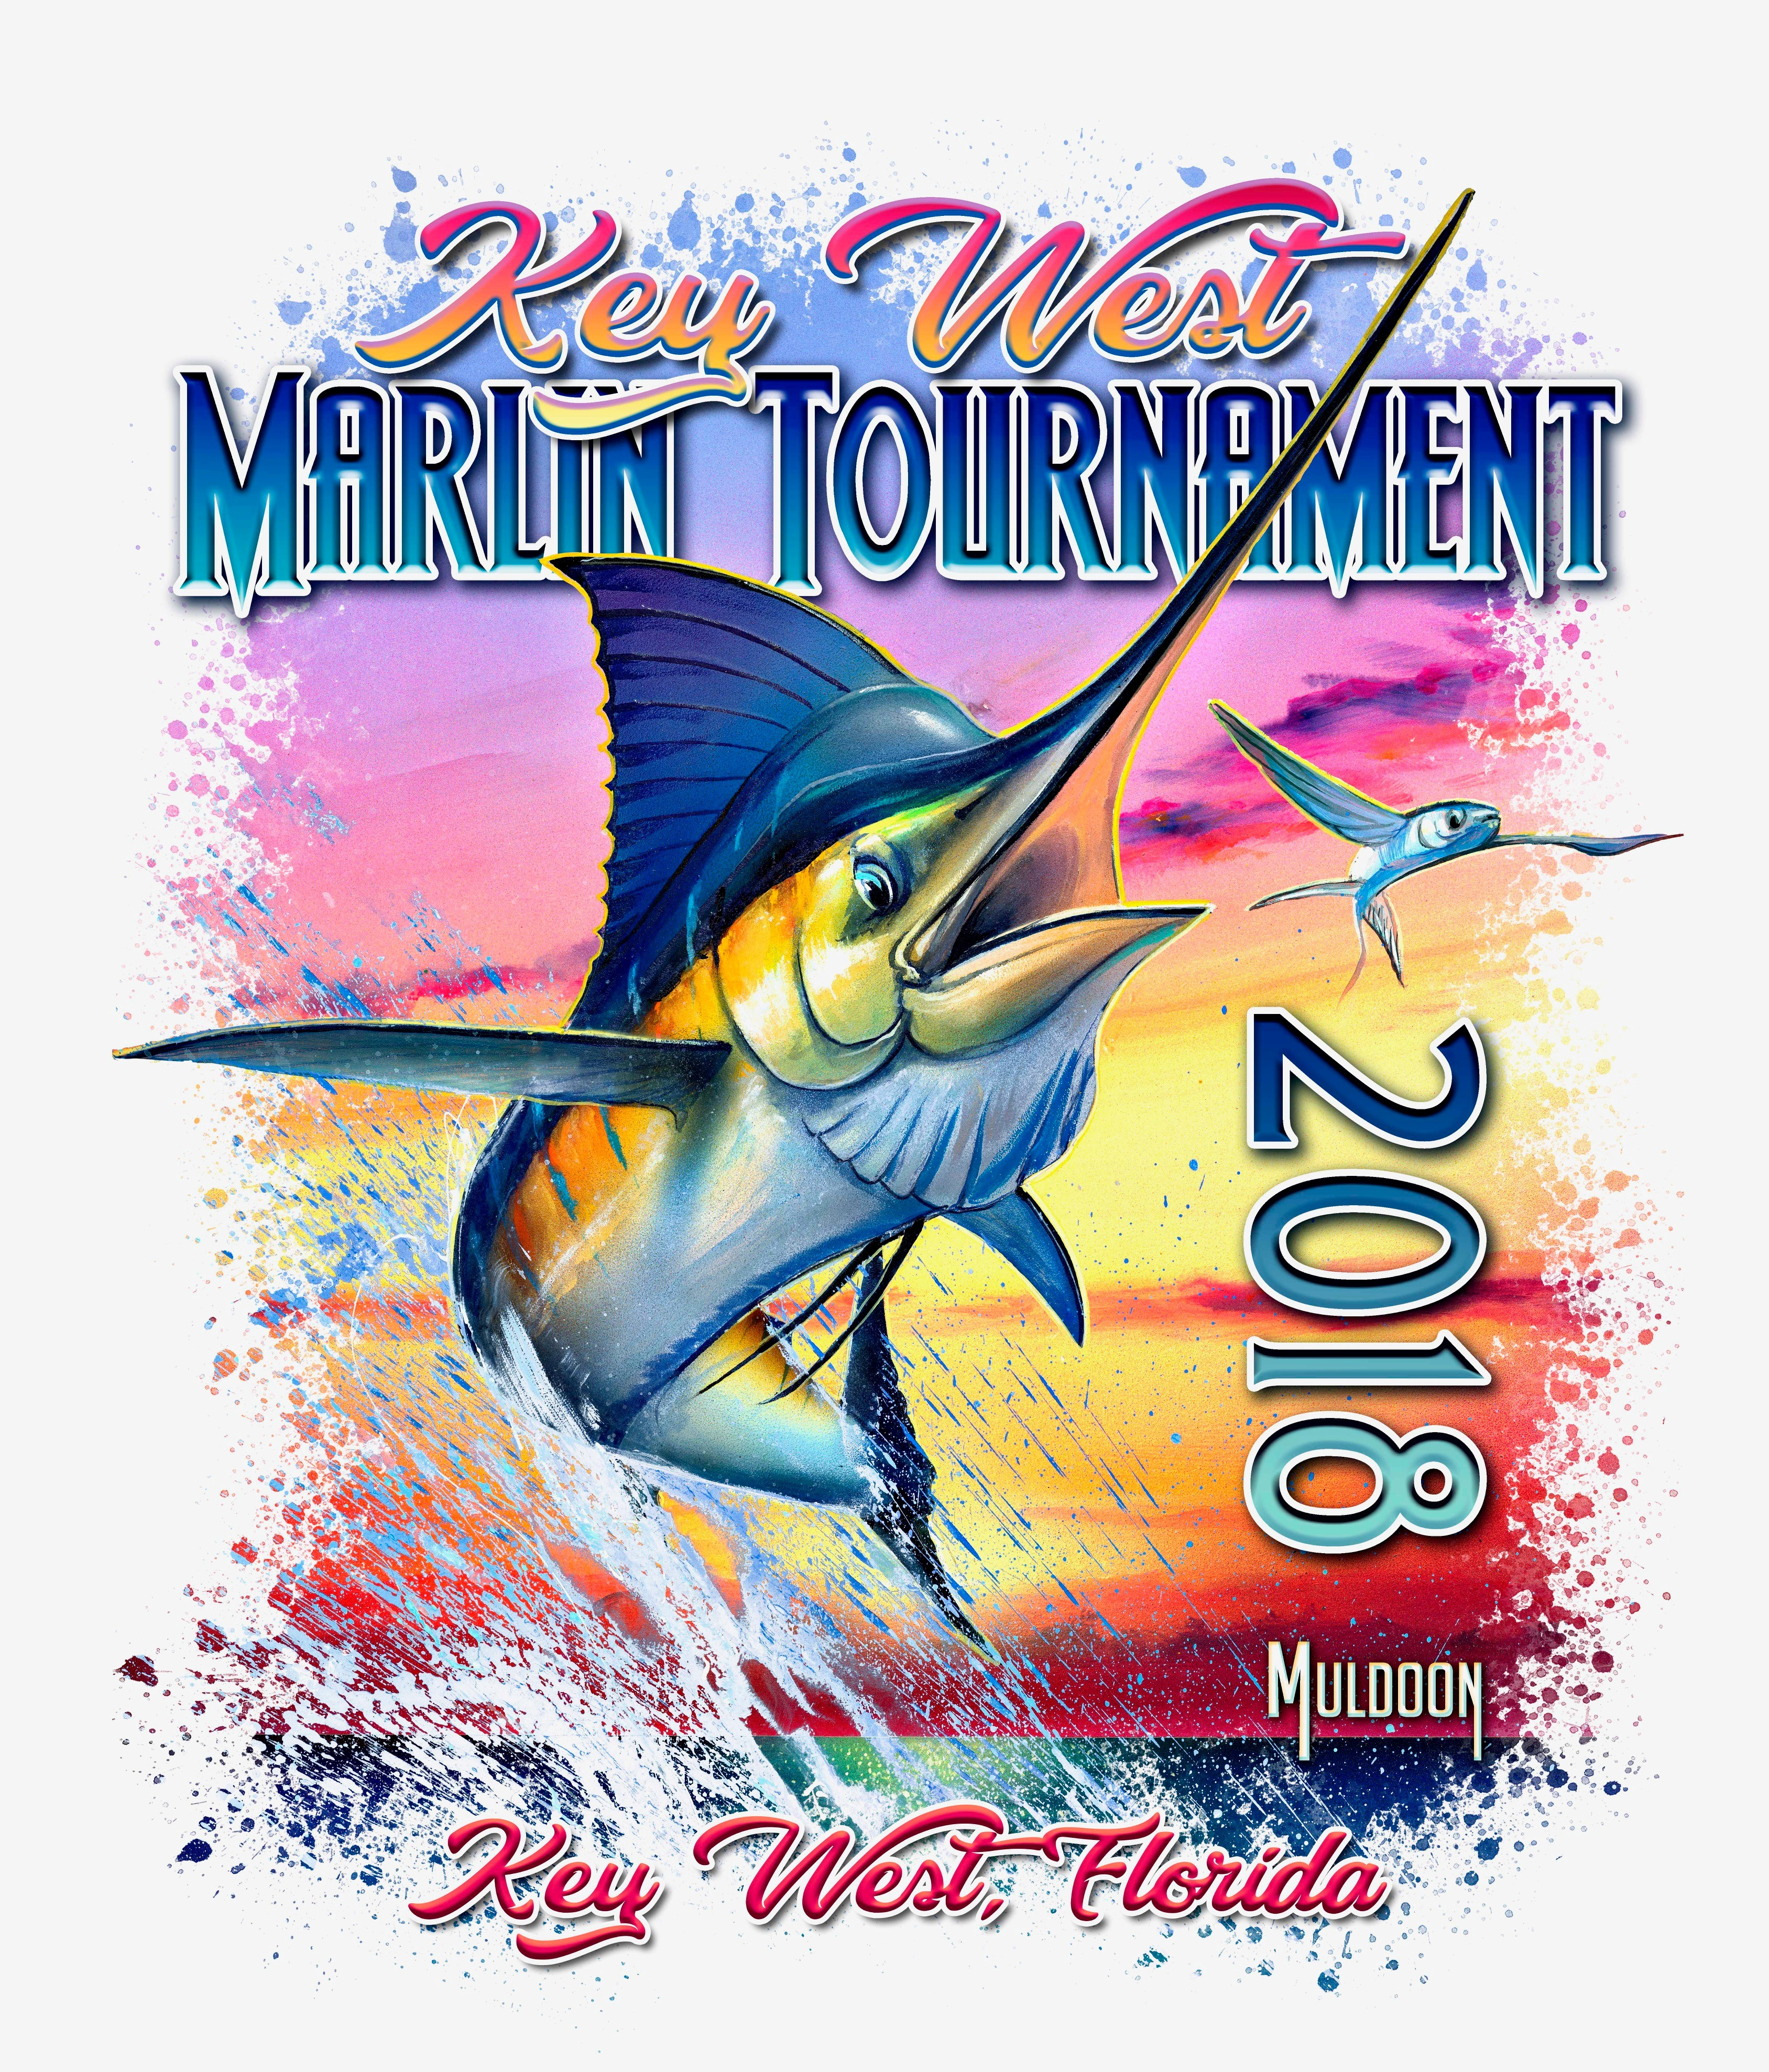 Key West Marlin Tournament 2018